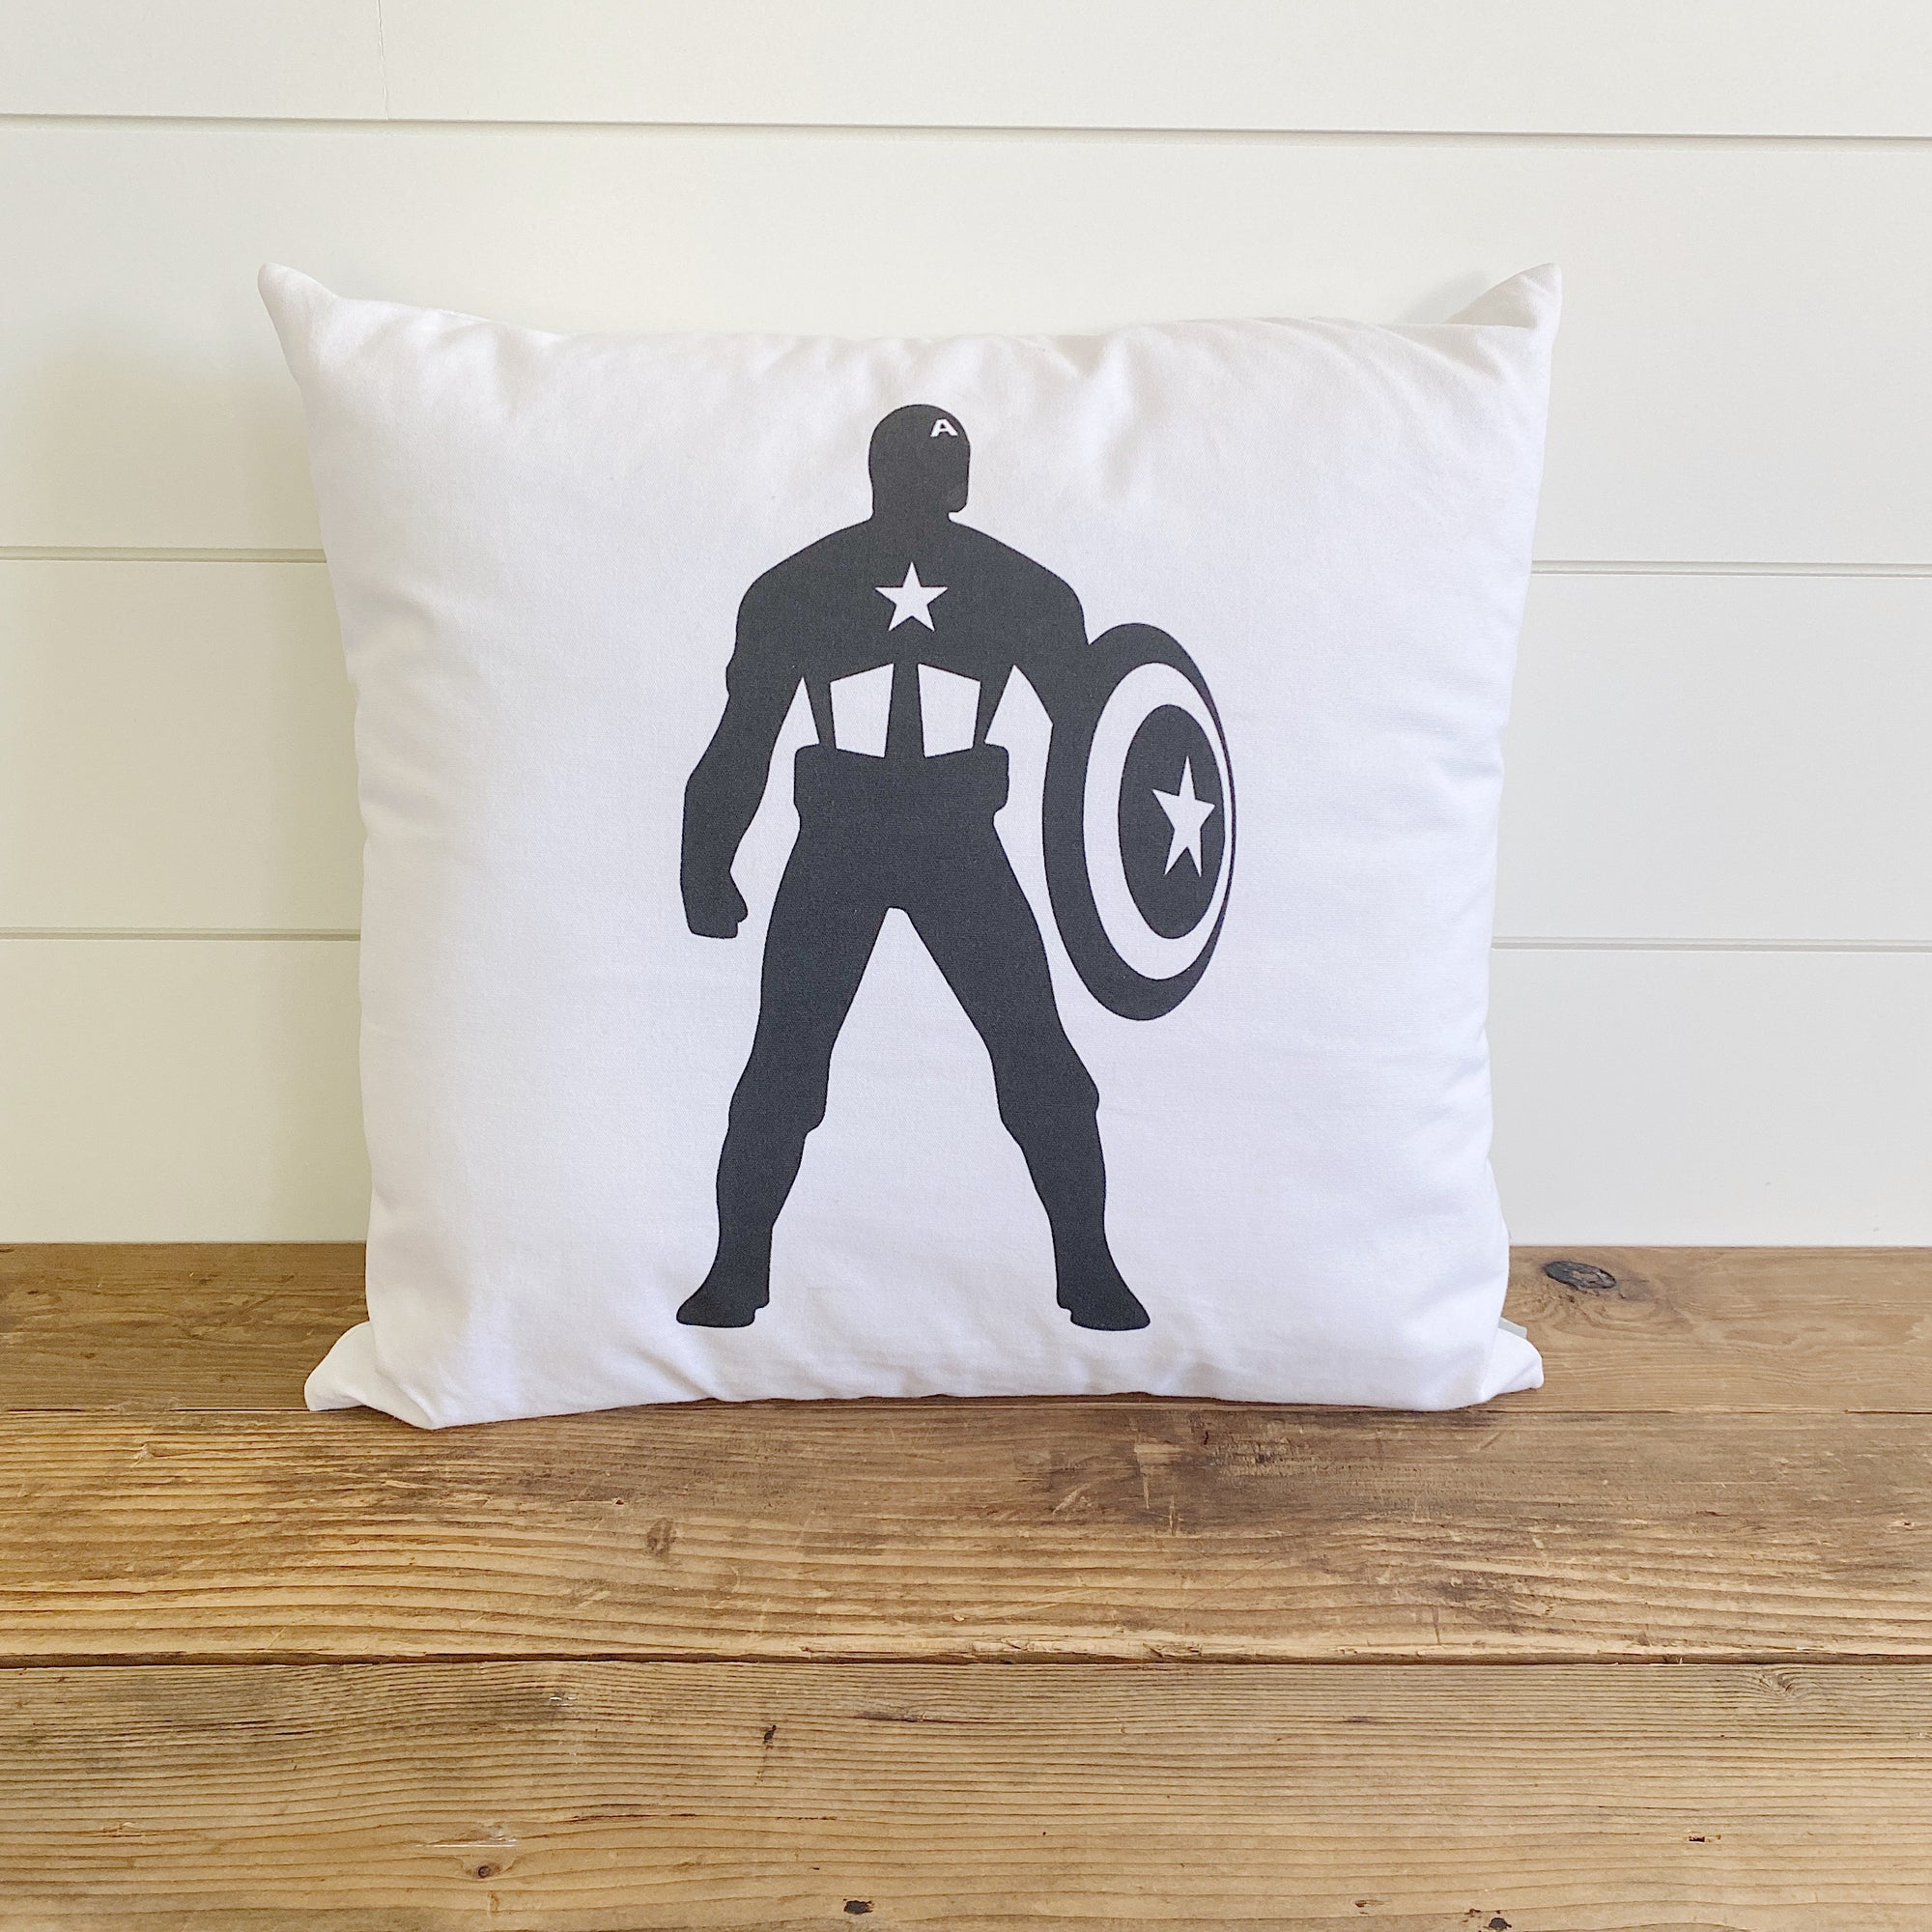 Vintage Captain America Pillow Cover (Design 2)